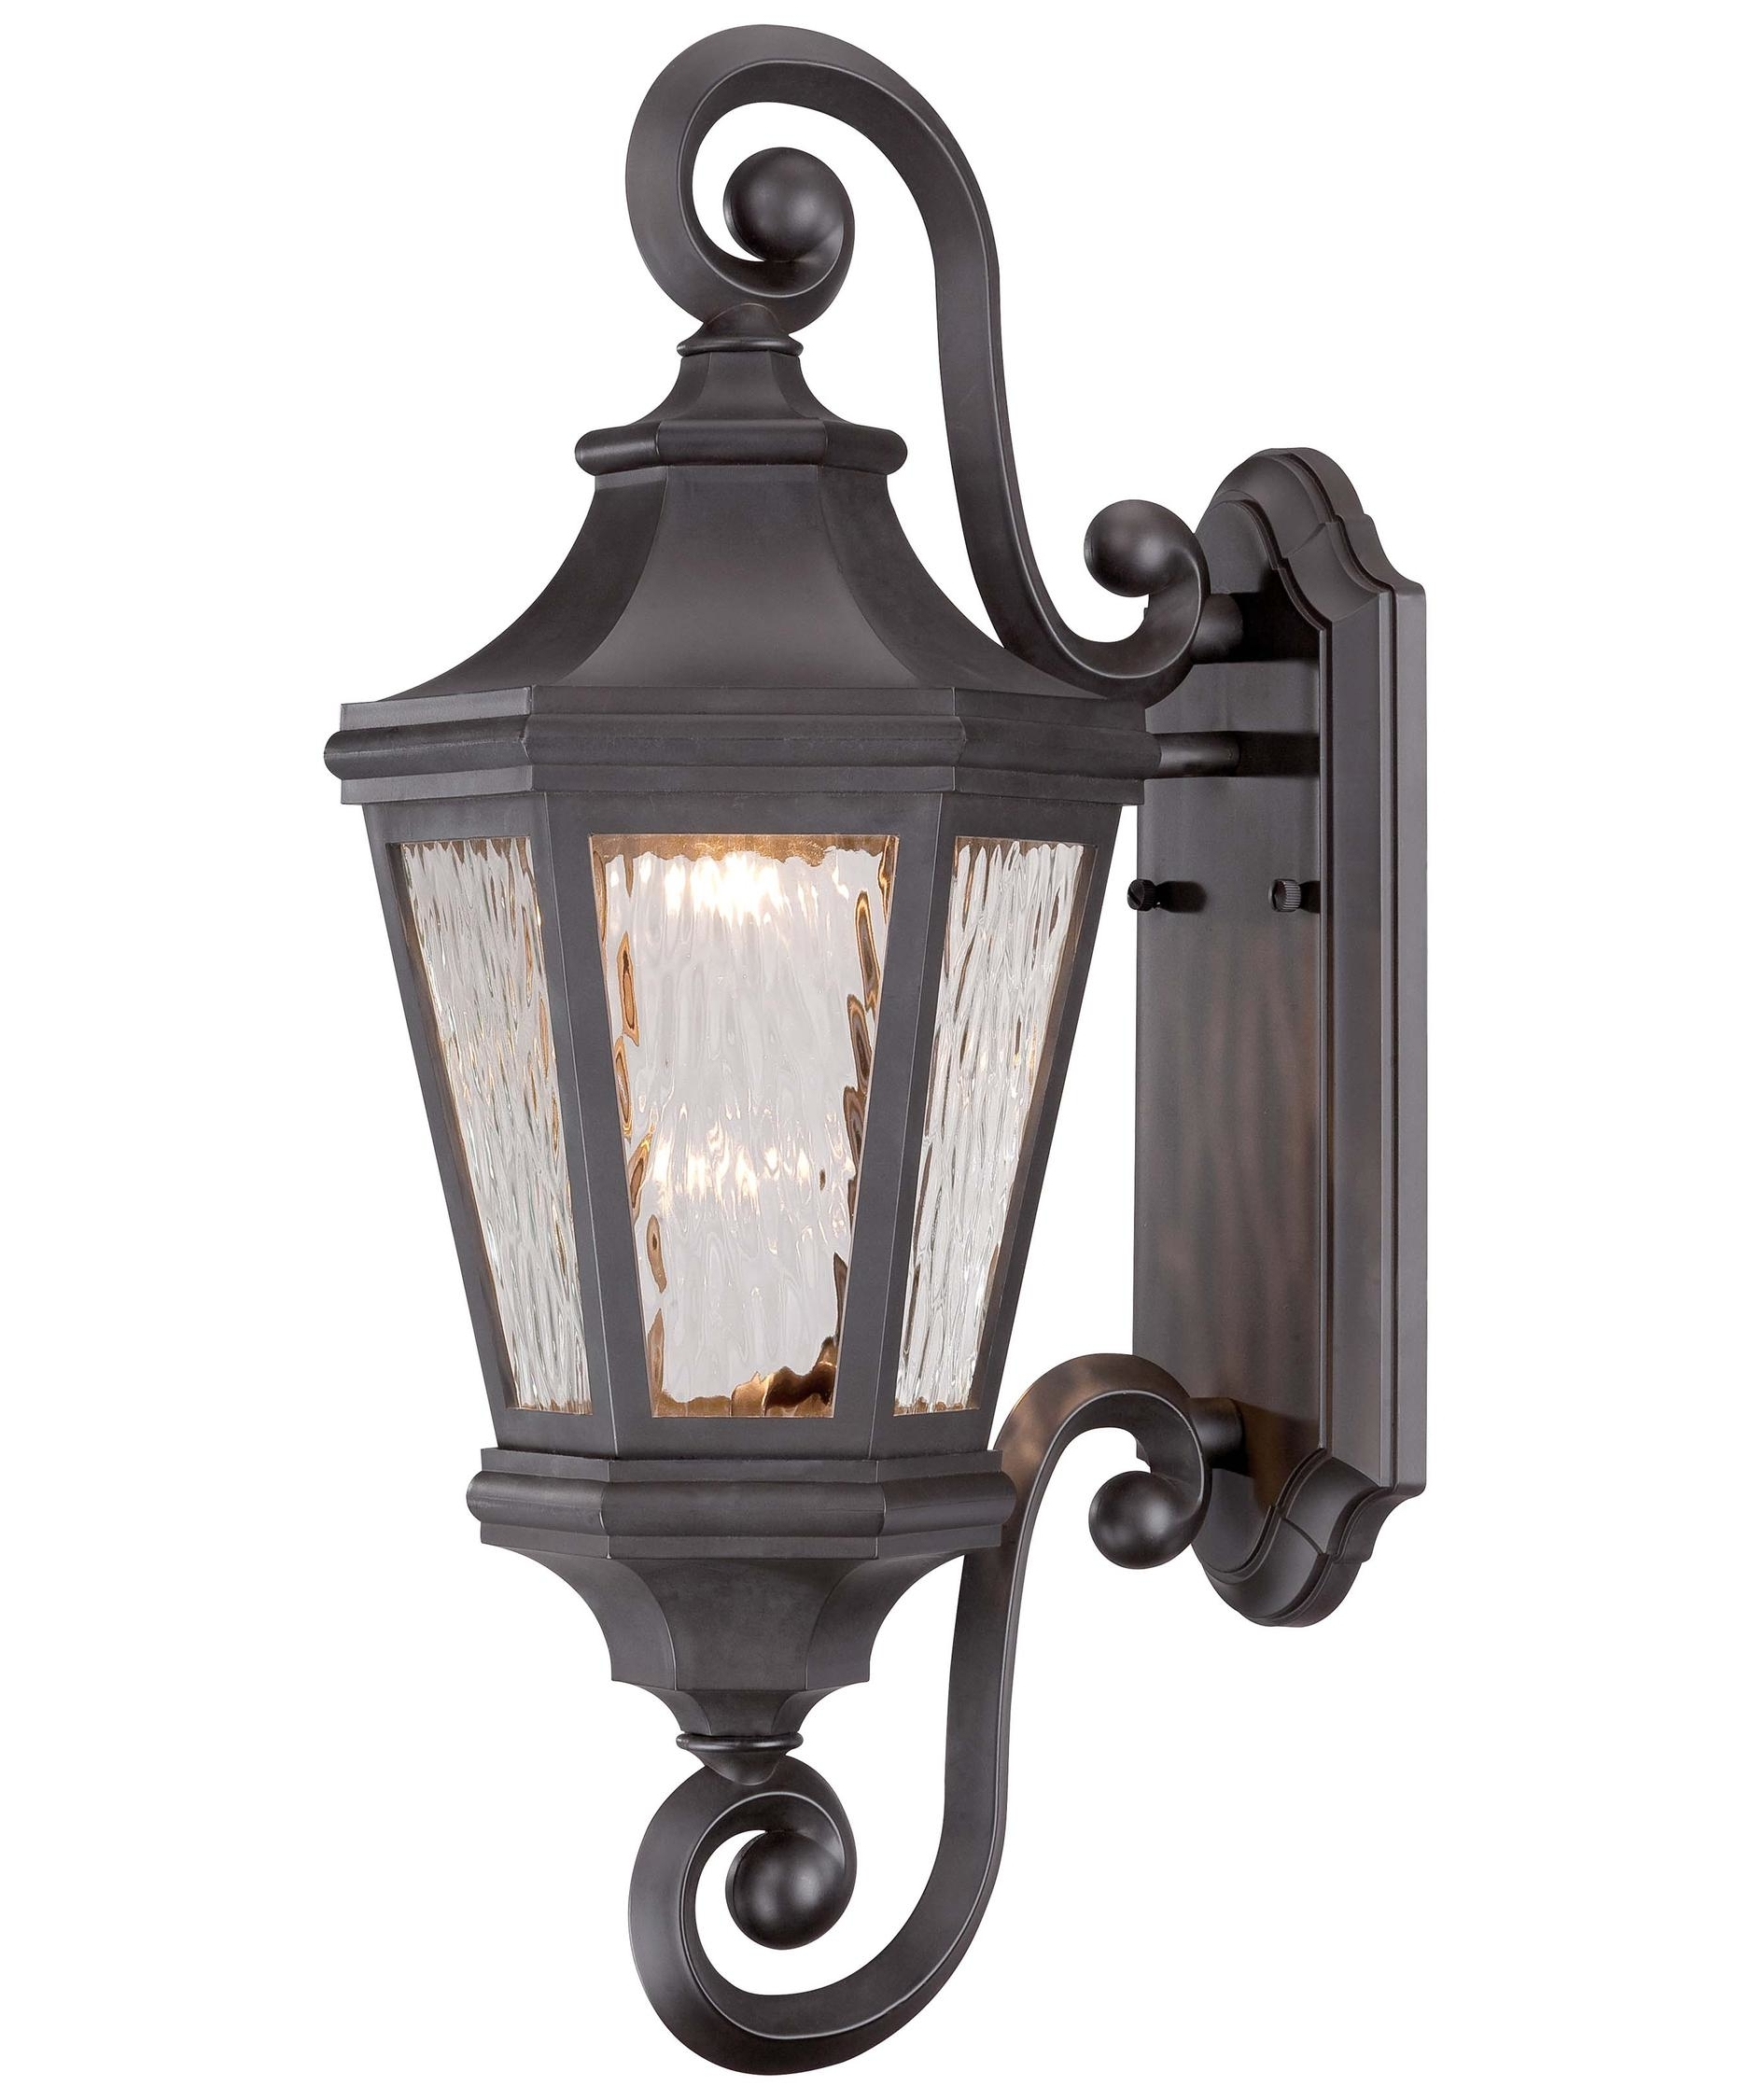 Buy The Brynmar Extra Large Outdoor Wall Sconce Outdoor Fixtures For 2019 Outdoor Wall Lighting At Houzz (View 12 of 20)